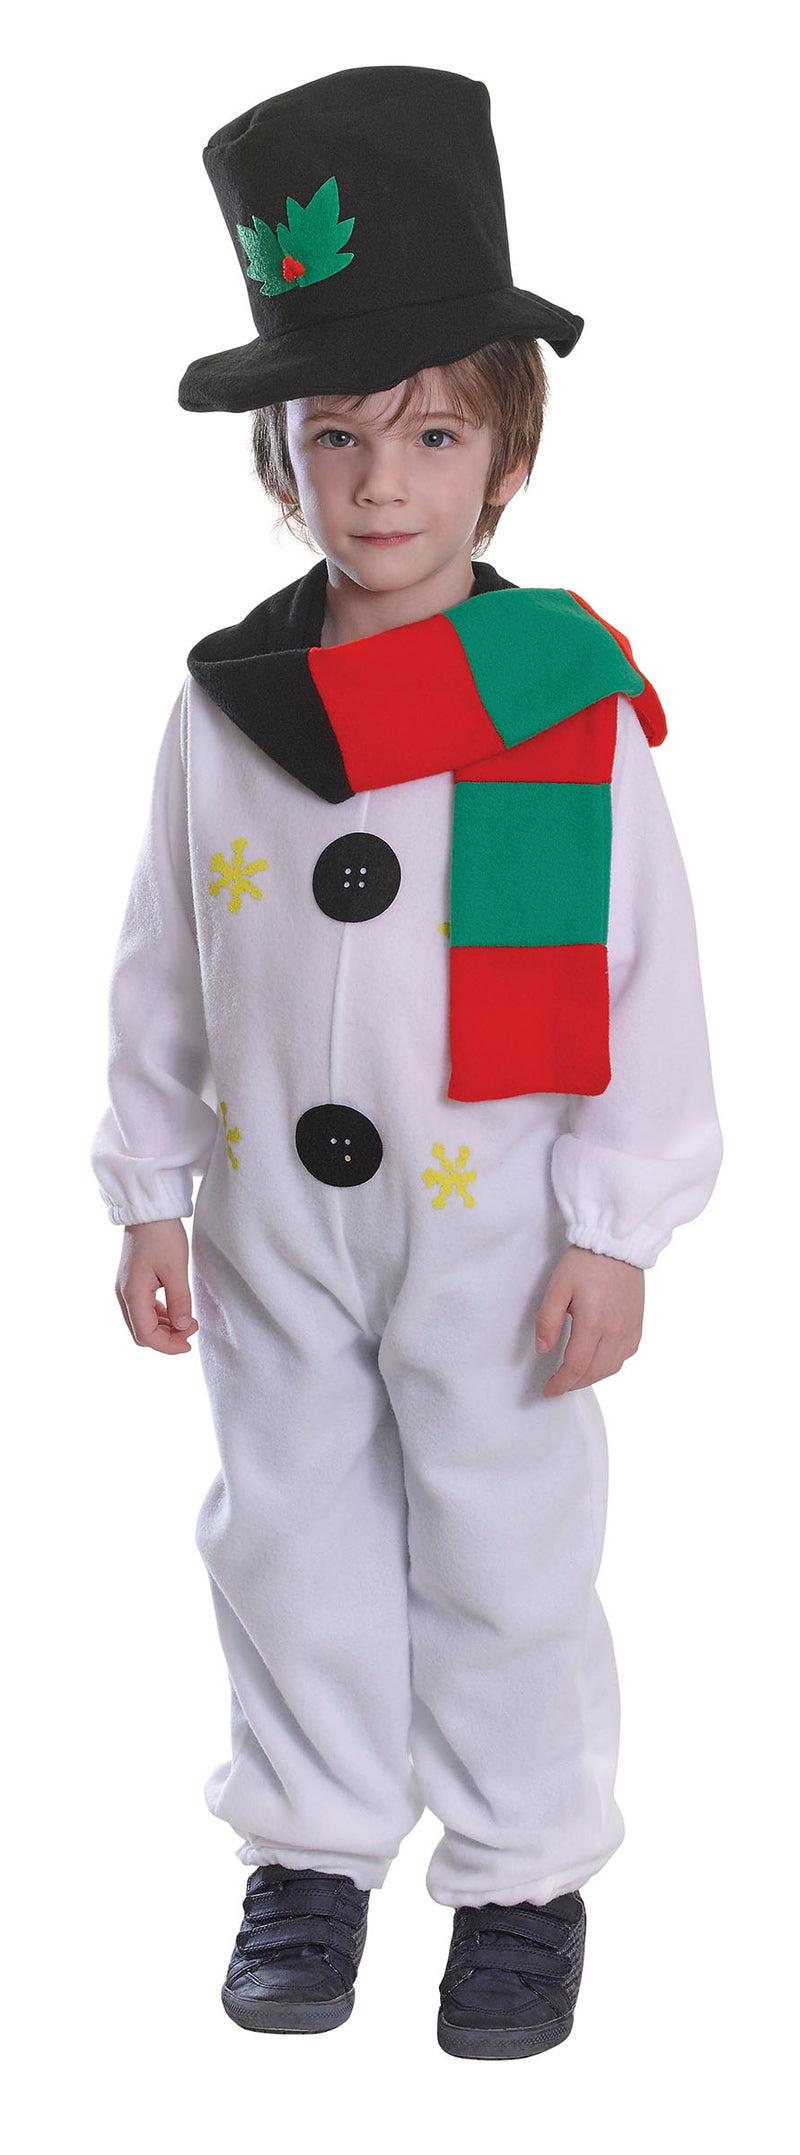 Snowman costume for boys